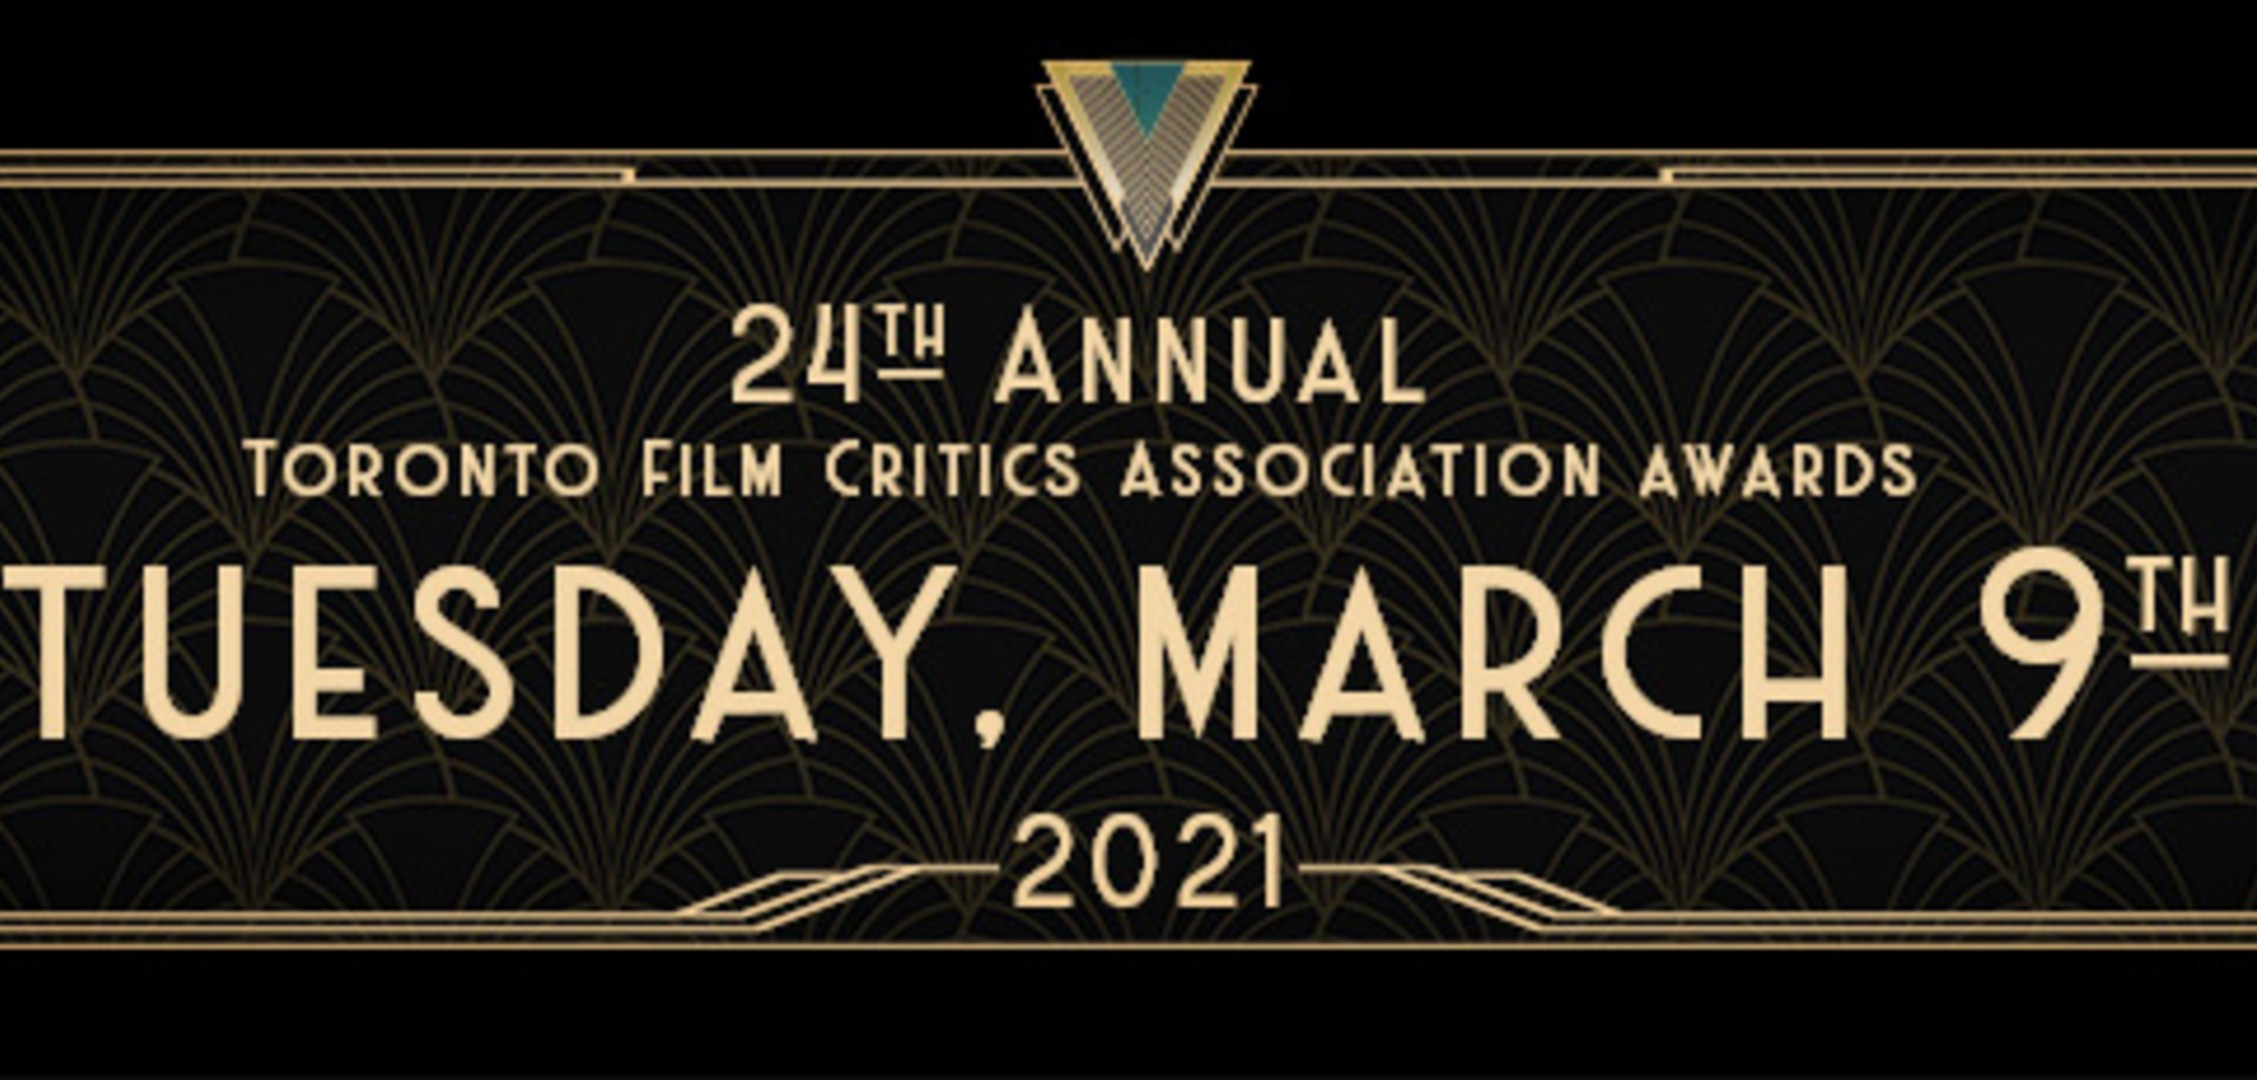 Don't Miss the 24th Annual Toronto Film Critics Association Awards Tomorrow Night